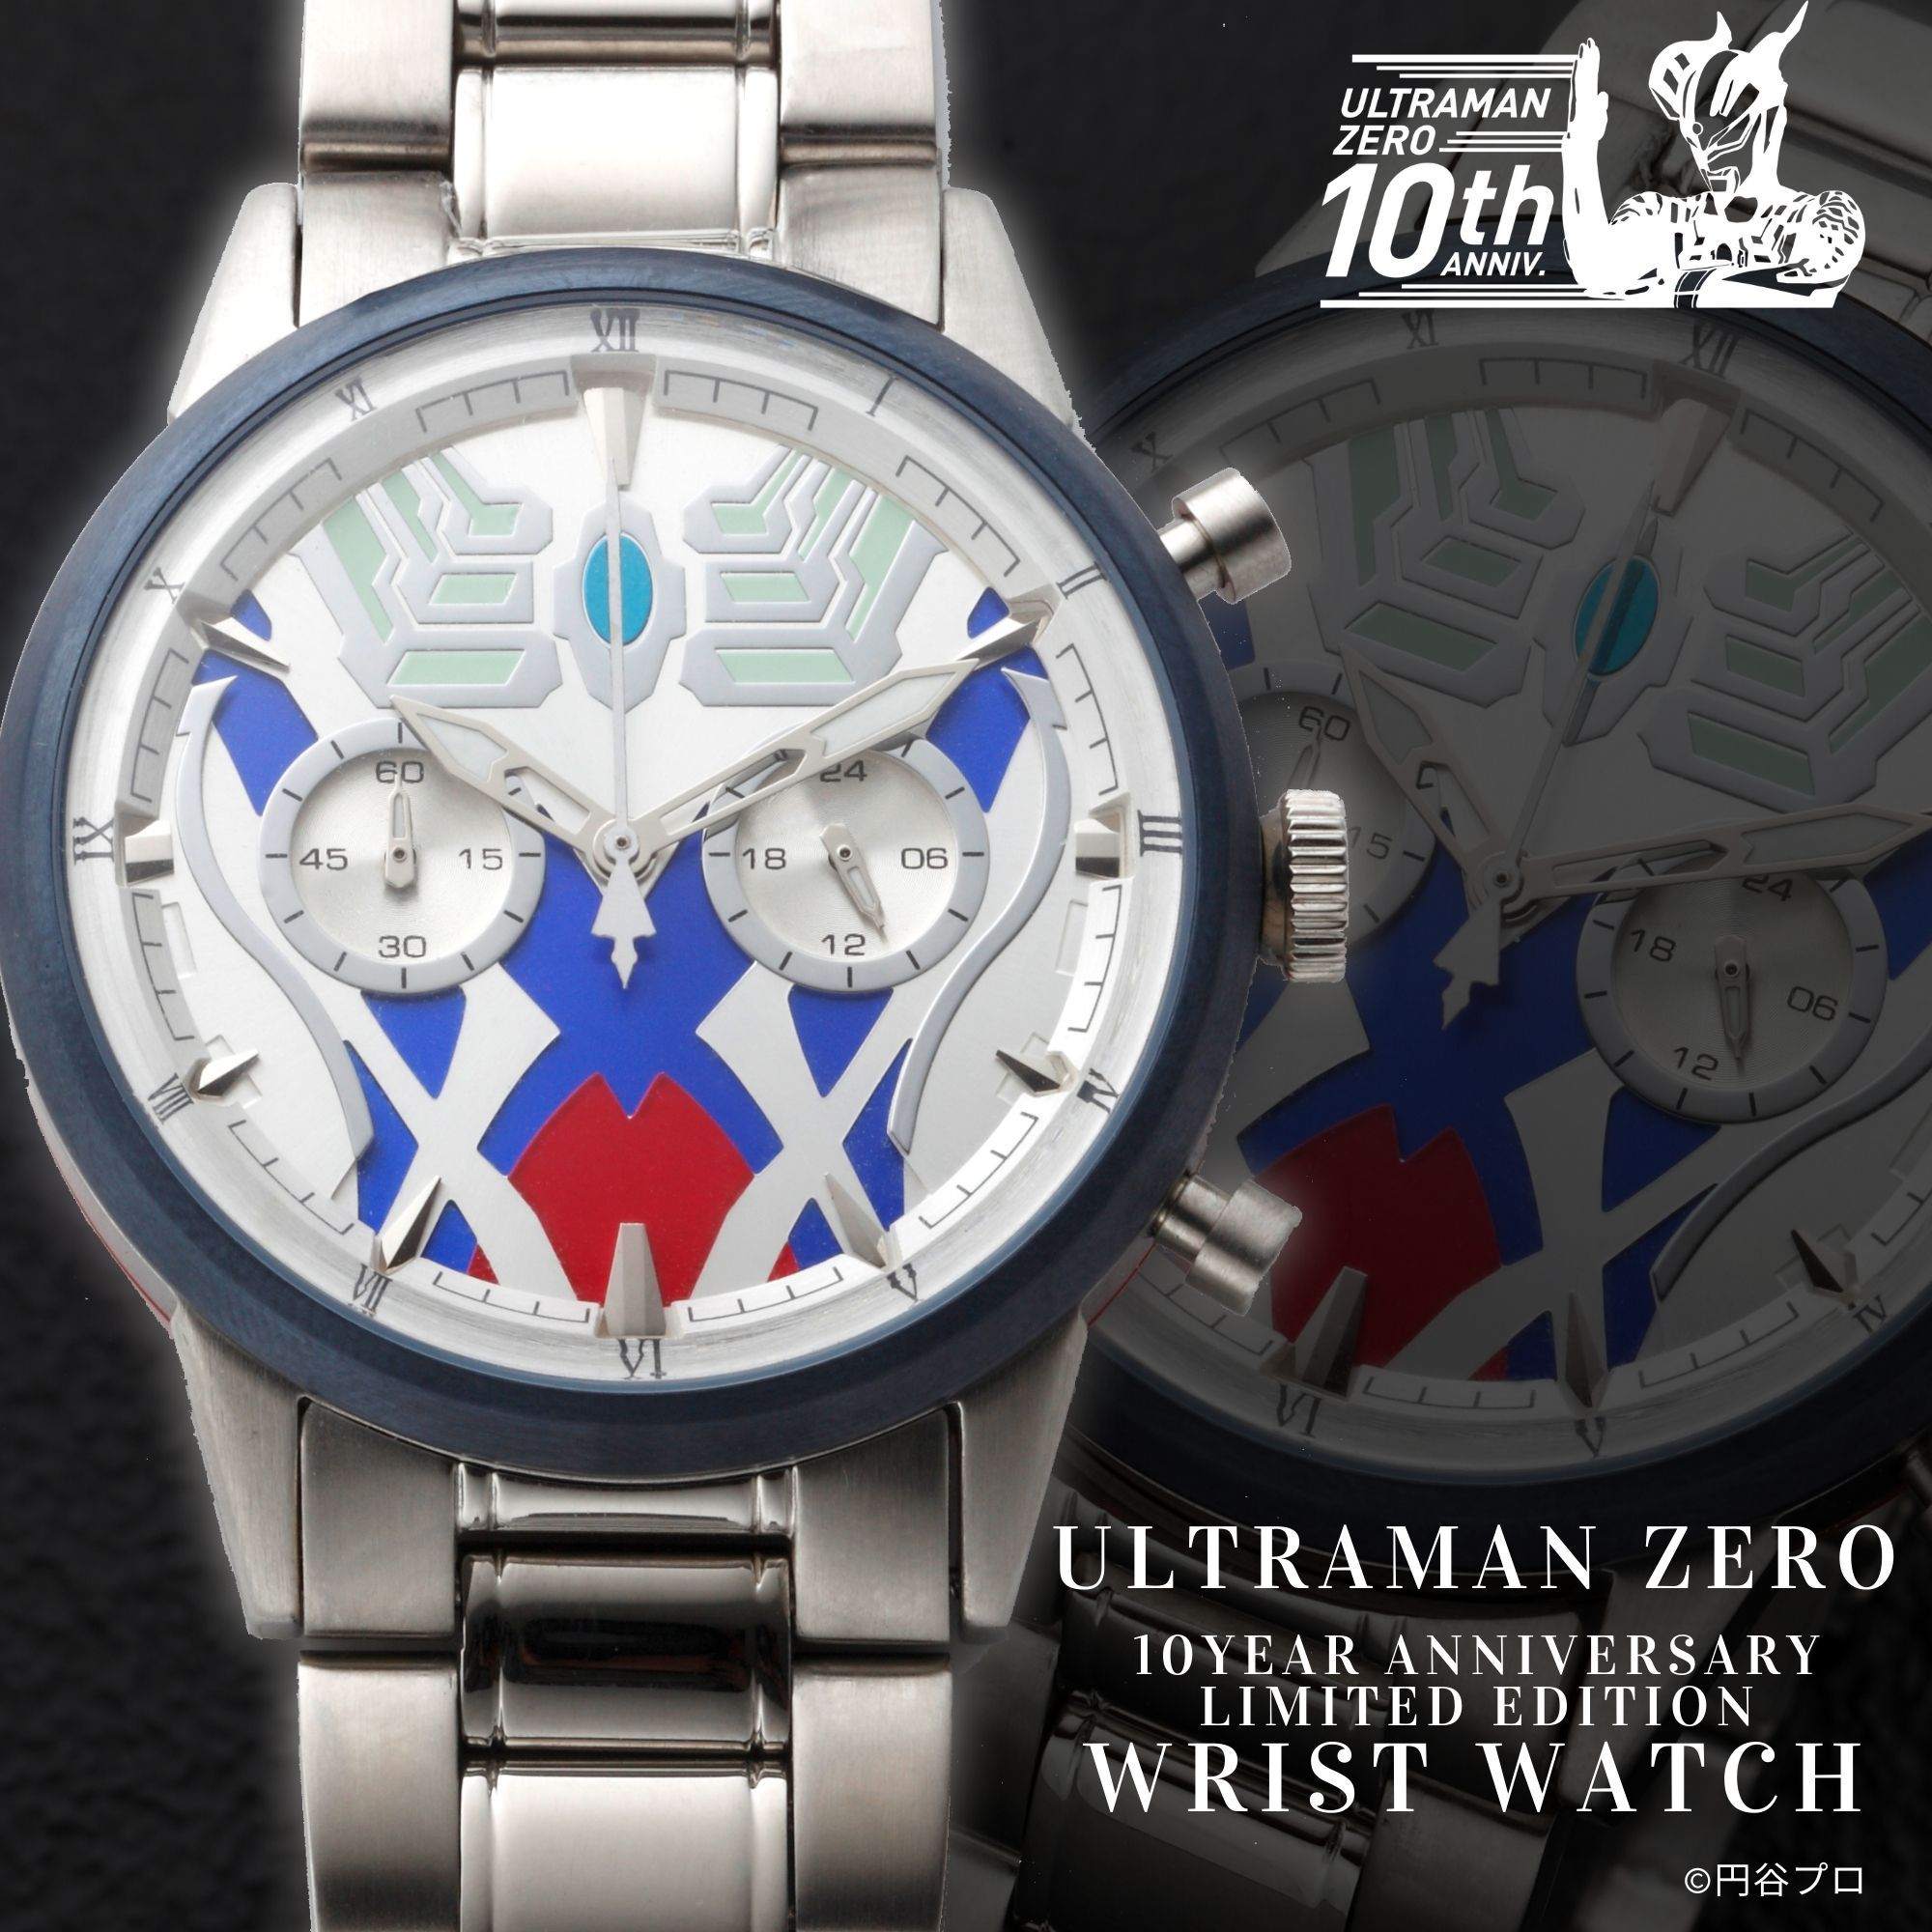 Ultraman Zero Watch